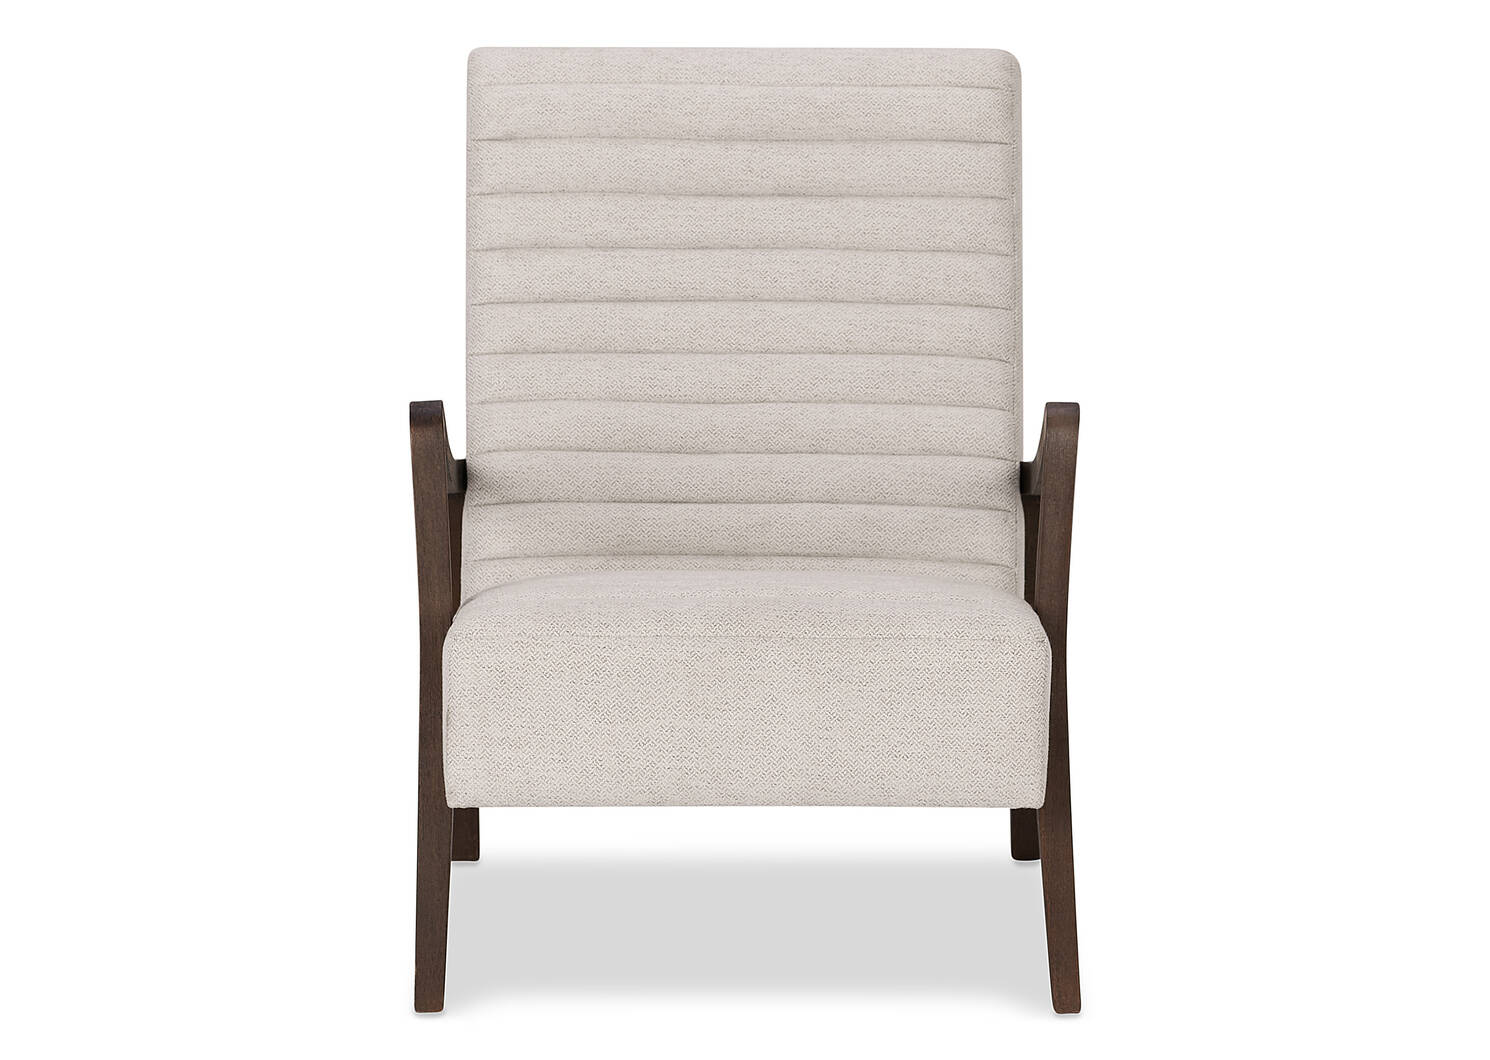 Fauteuil Coleman -Silas platine